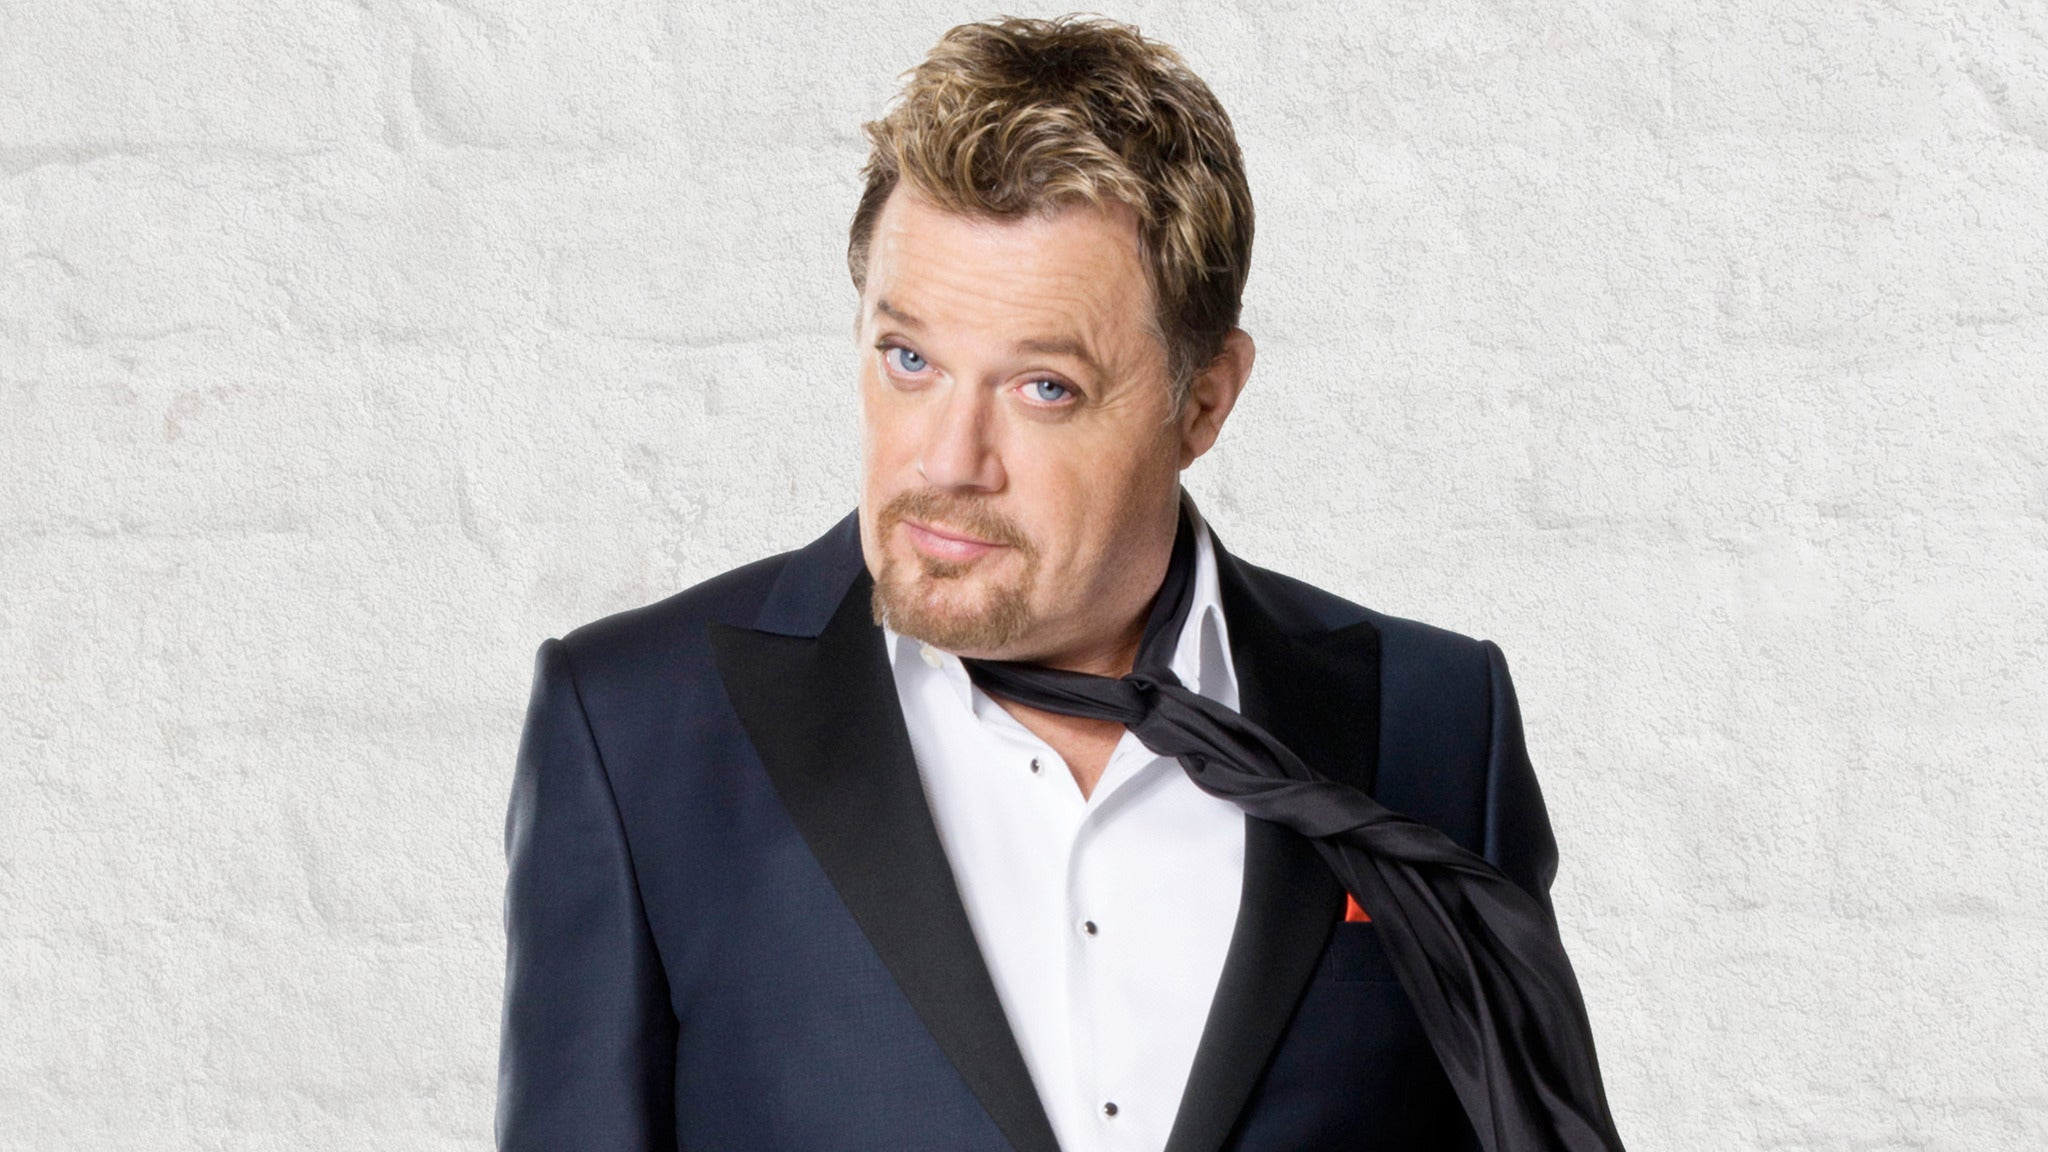 Civic Arts Plaza presents EDDIE IZZARD